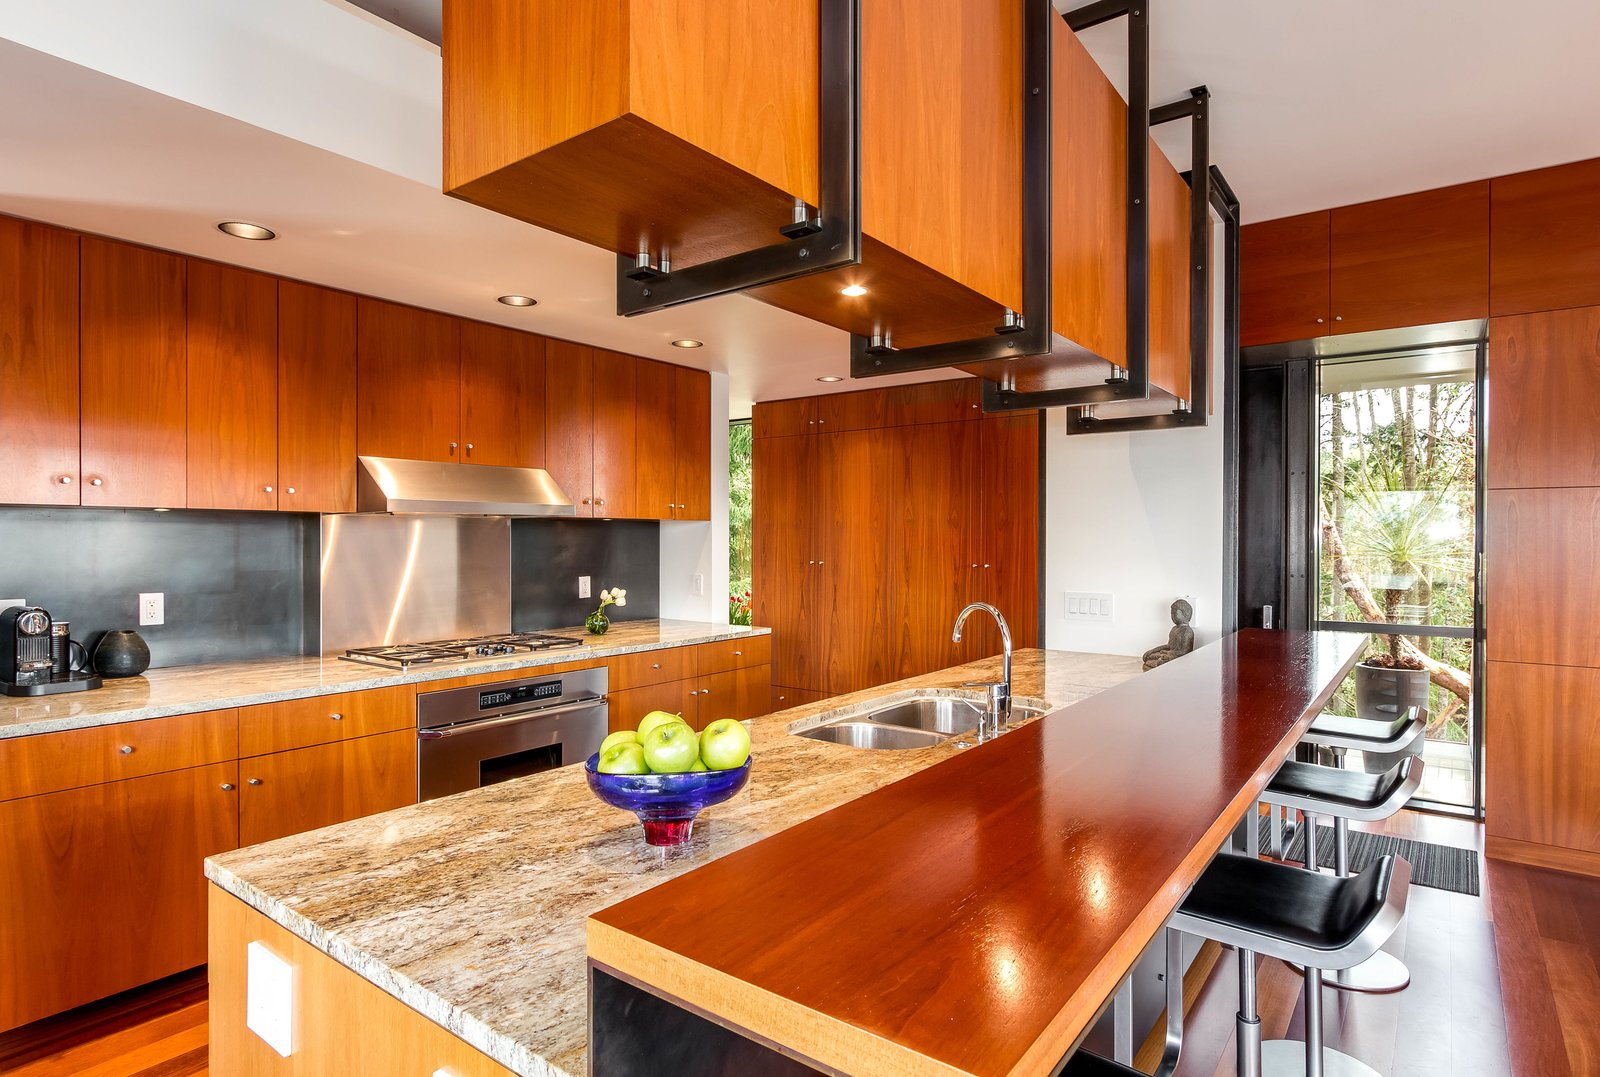 Kitchen The modern kitchen features high-end finishes and breakfast bar seating.   Photo 5 of 8 in A Cantilevered Bainbridge Island Home Set Atop a Historic Bunker Lists For $1.73M from Stunning Steel-Frame Construction Cantilevered atop Historic Bunker For Sale